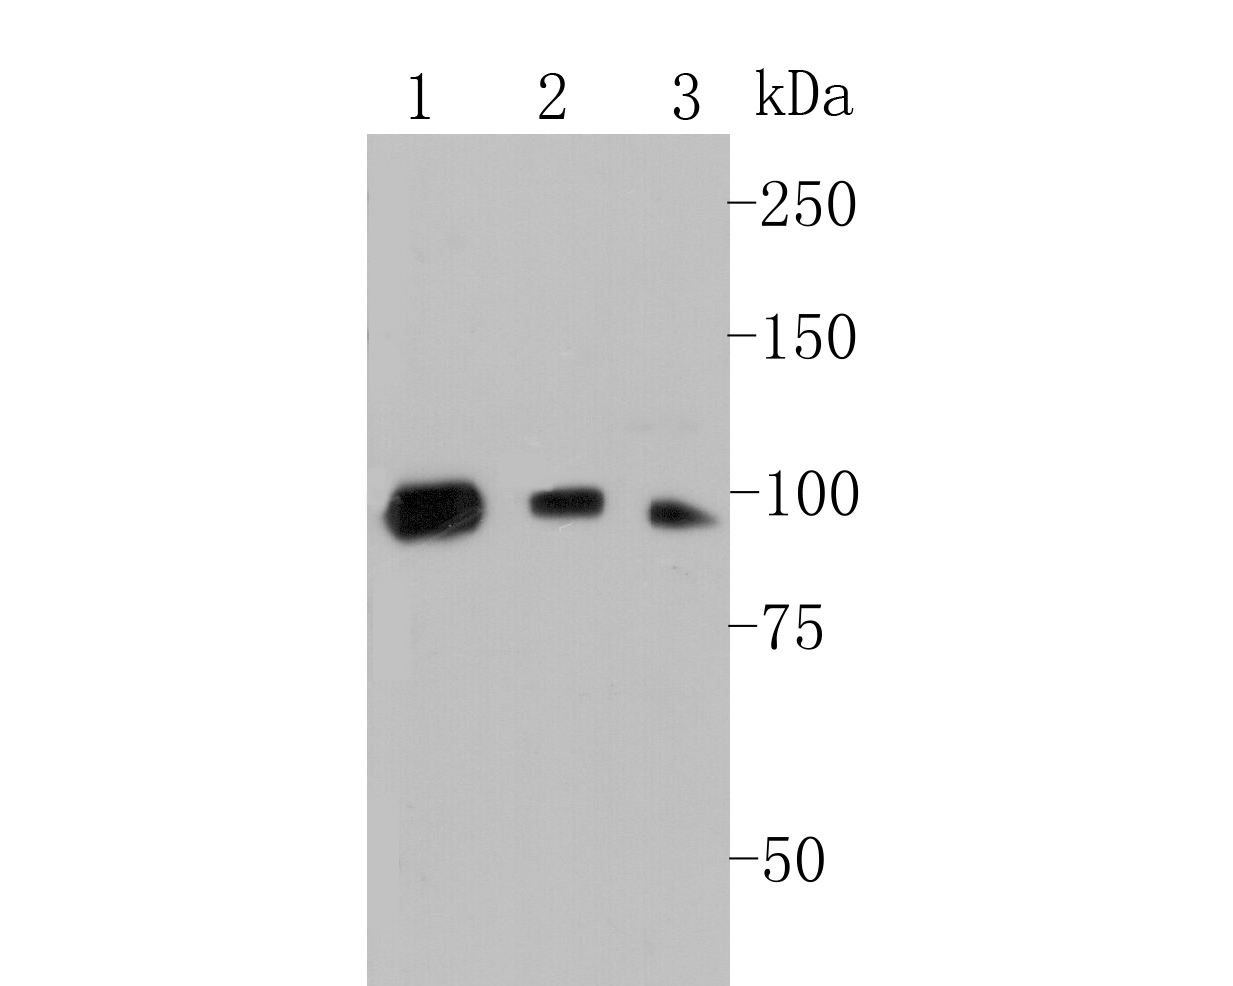 Western blot analysis of C7 on different lysates. Proteins were transferred to a PVDF membrane and blocked with 5% BSA in PBS for 1 hour at room temperature. The primary antibody (EM1901-14, 1/500) was used in 5% BSA at room temperature for 2 hours. Goat Anti-Mouse IgG - HRP Secondary Antibody (HA1006) at 1:5,000 dilution was used for 1 hour at room temperature.<br /> Positive control: <br /> Lane 1: HepG2 cell lysate<br /> Lane 2: K562 cell lysate<br /> Lane 3: HUVEC cell lysate